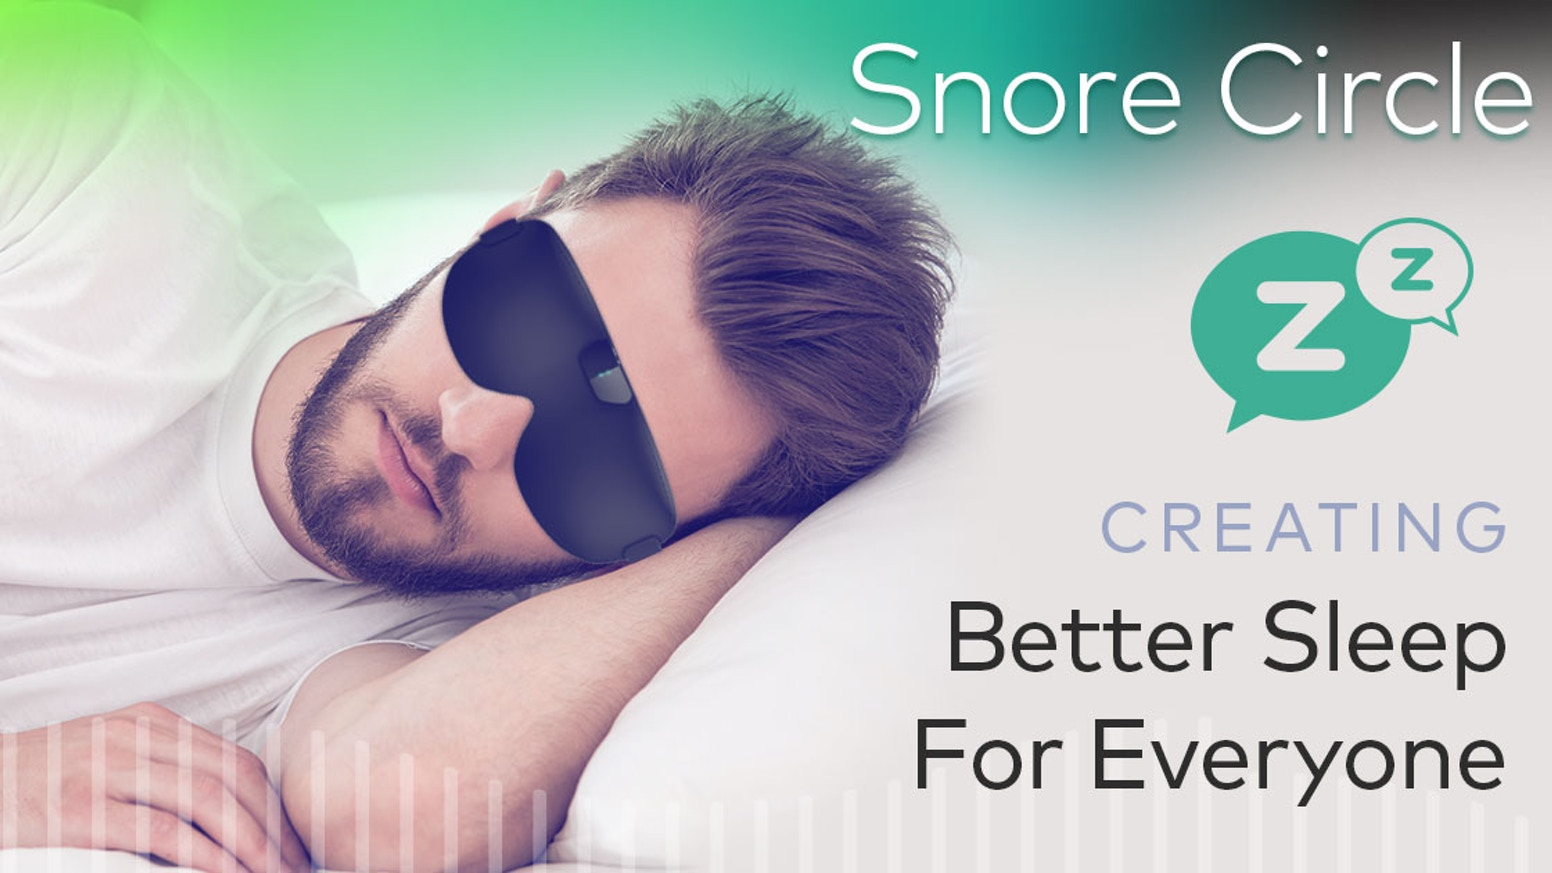 Snore Circle - Smart Anti-Snoring Eye Mask by VVFLY